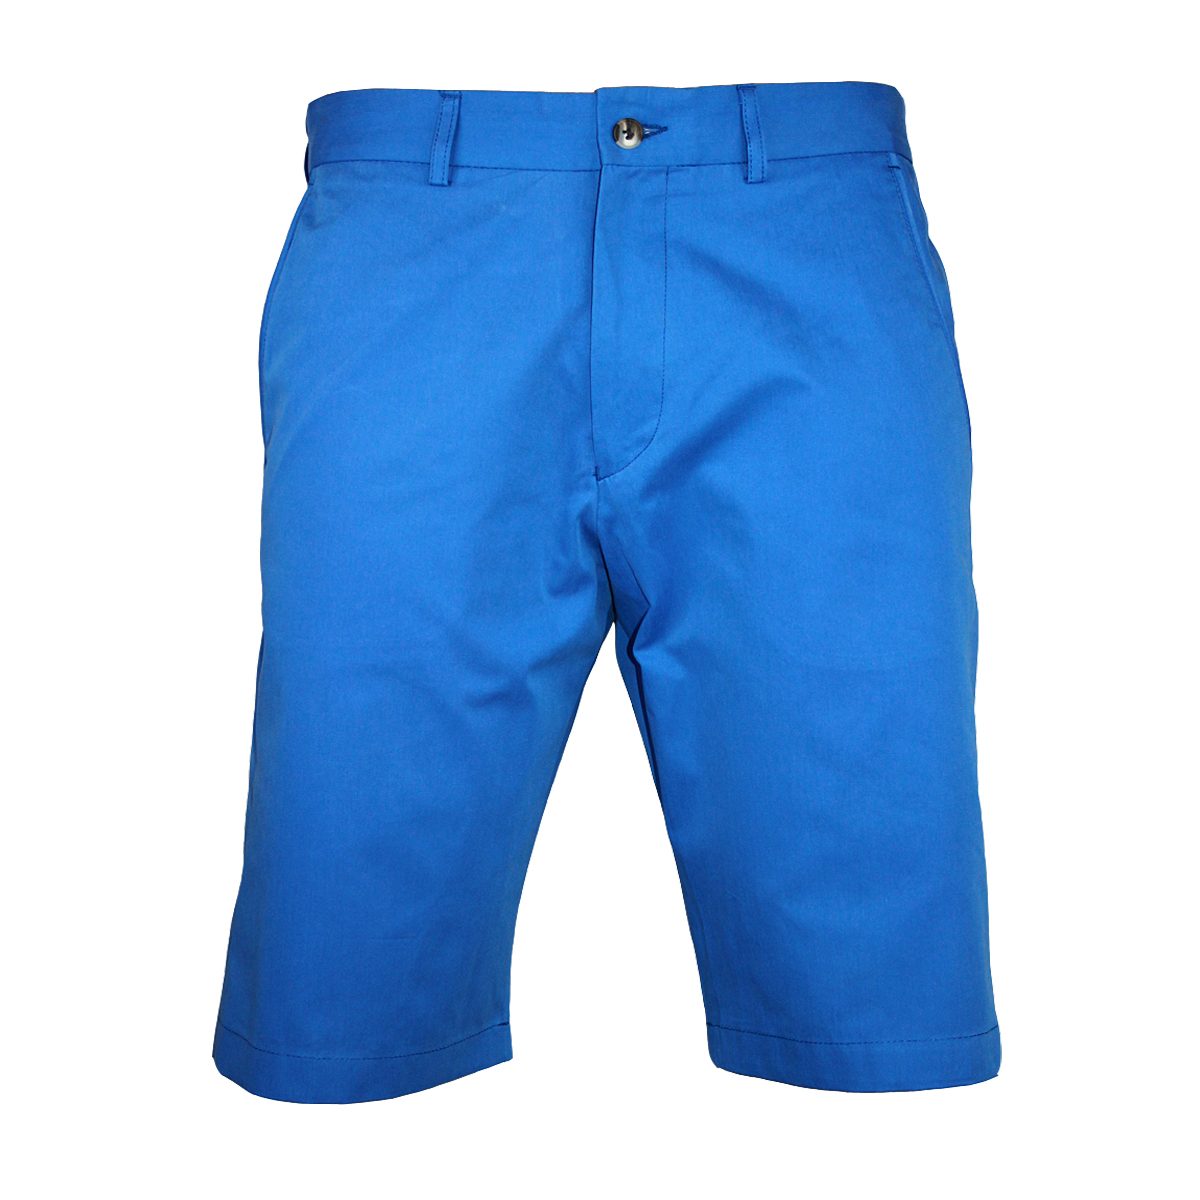 Mens Walking Shorts - The Else